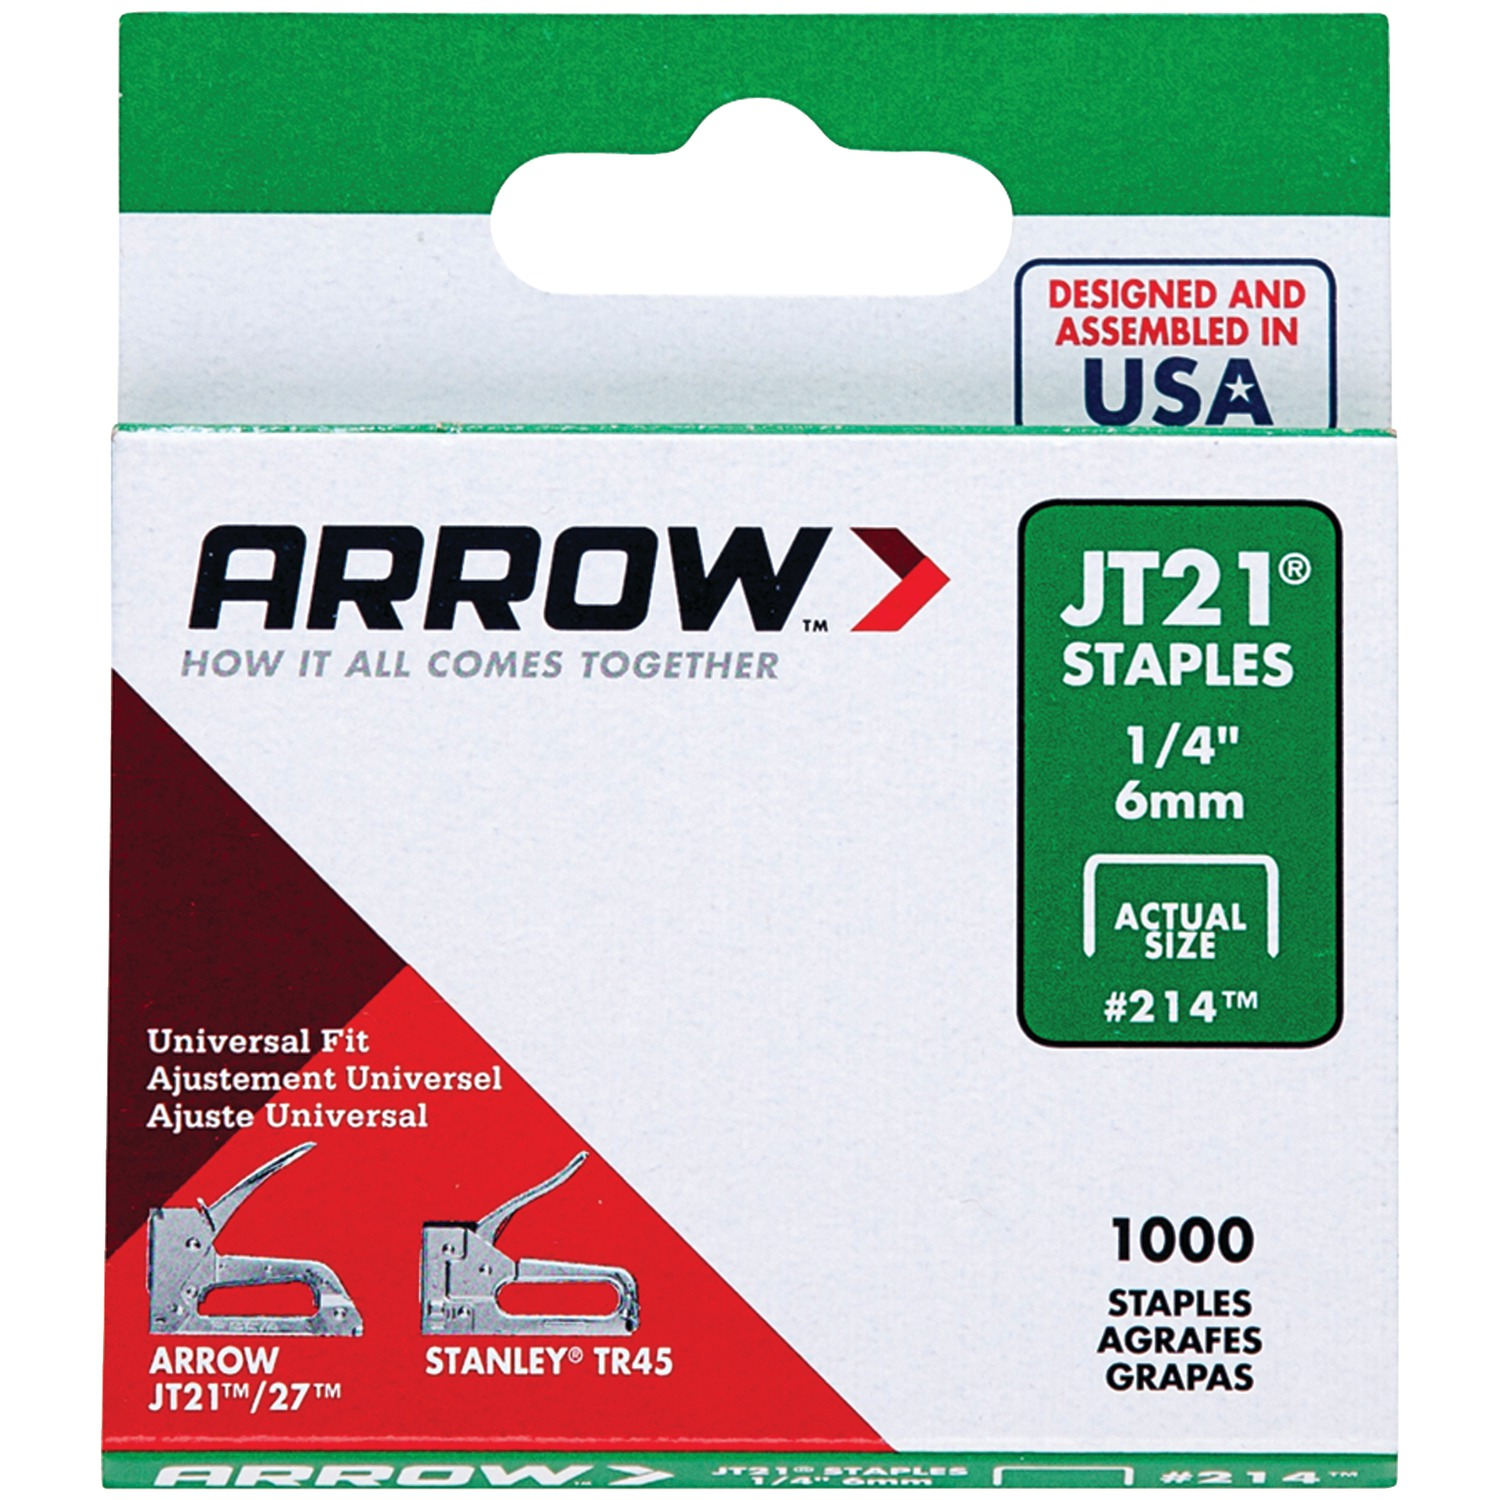 Arrow 1 4 inch T21 Staples, 1,000 Count by Arrow Fastener